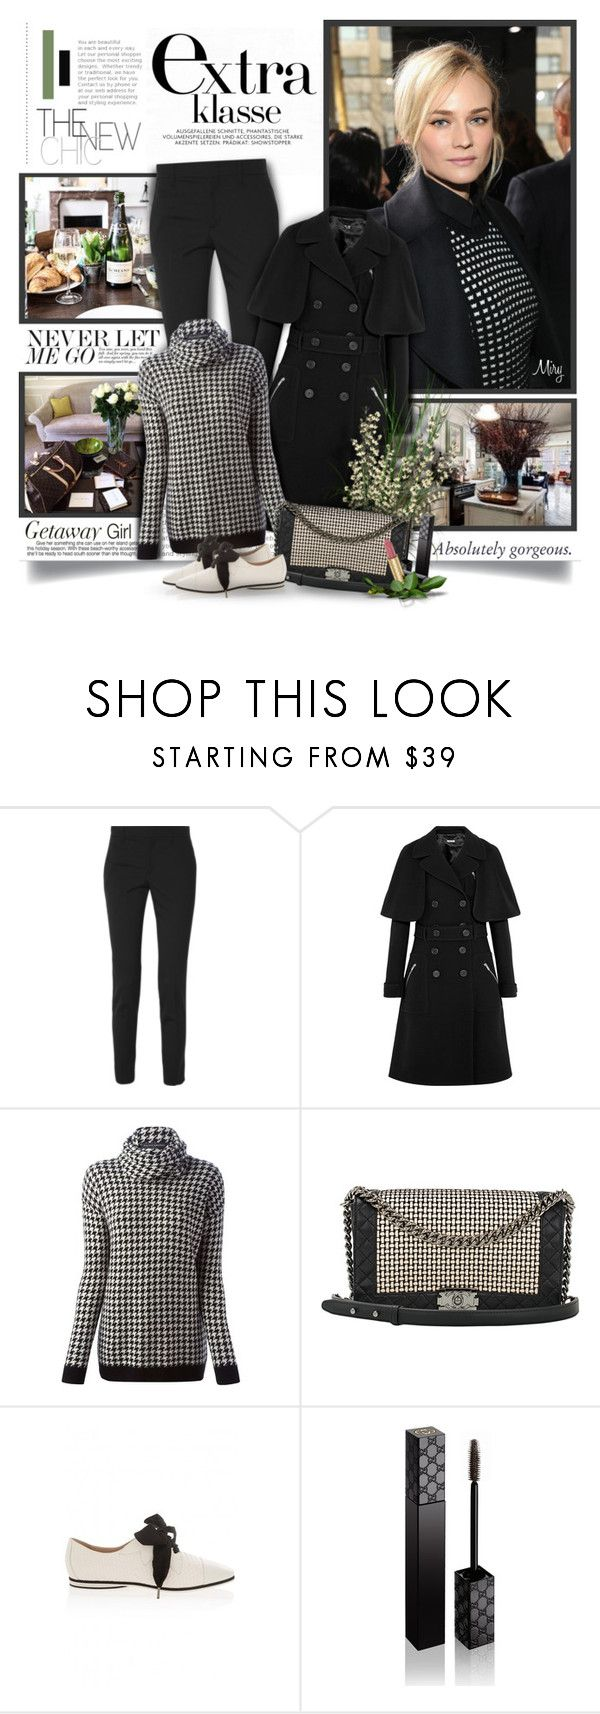 """The New Chic"" by thewondersoffashion ❤ liked on Polyvore featuring xO Design, Gucci, Miu Miu, Ralph Lauren Black Label, Chanel and Emporio Armani"